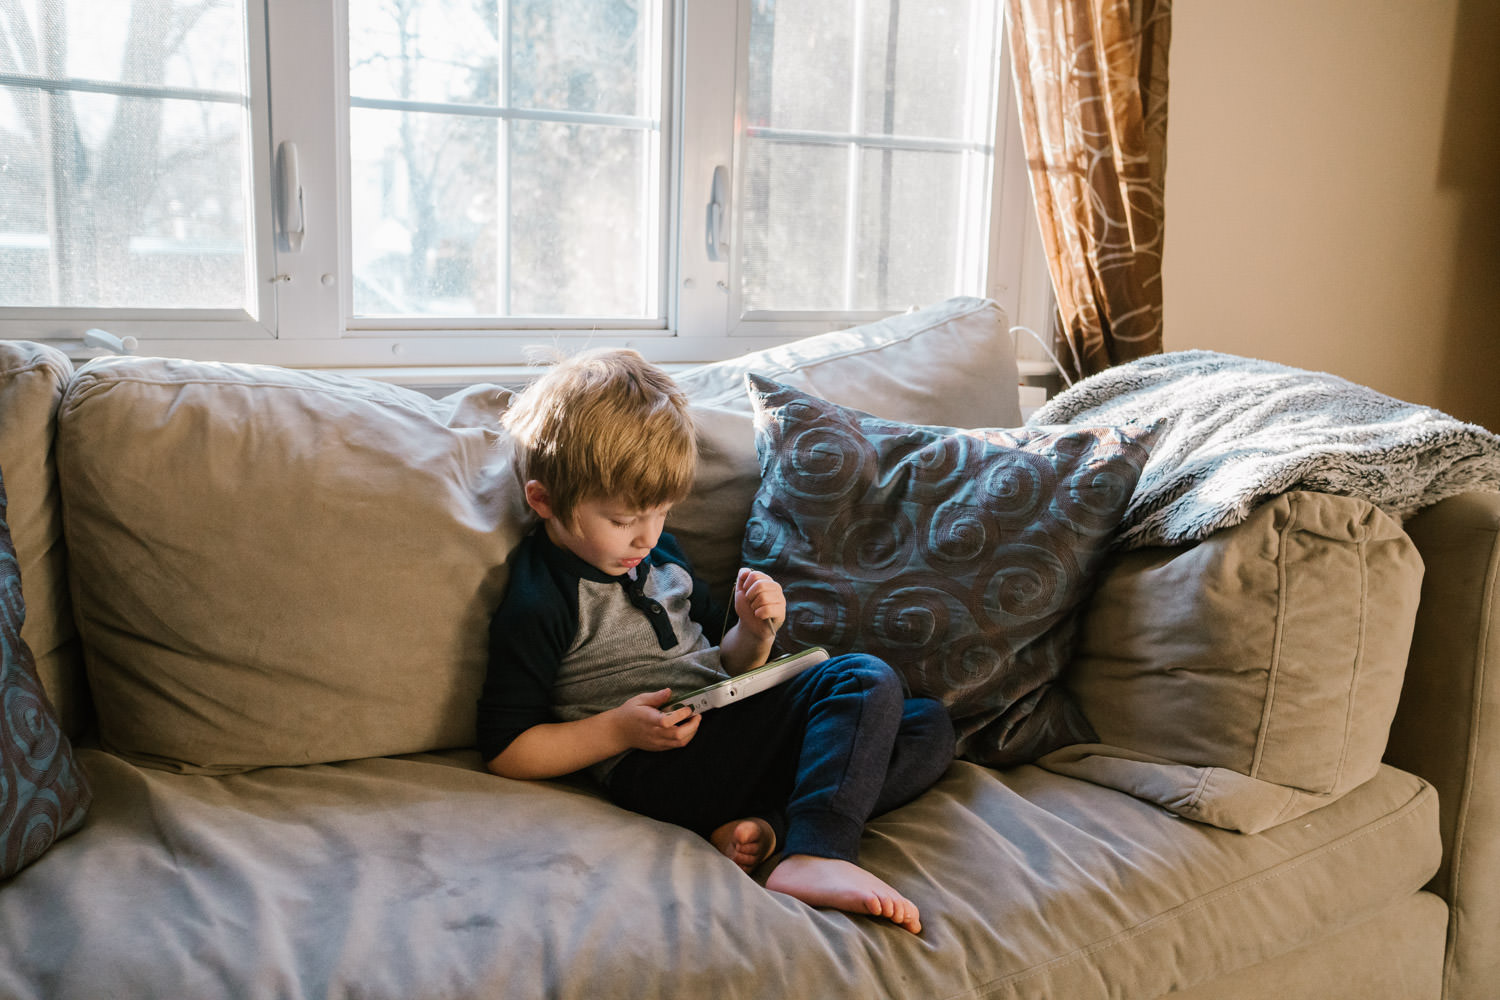 A little boy plays with a tablet on a couch.